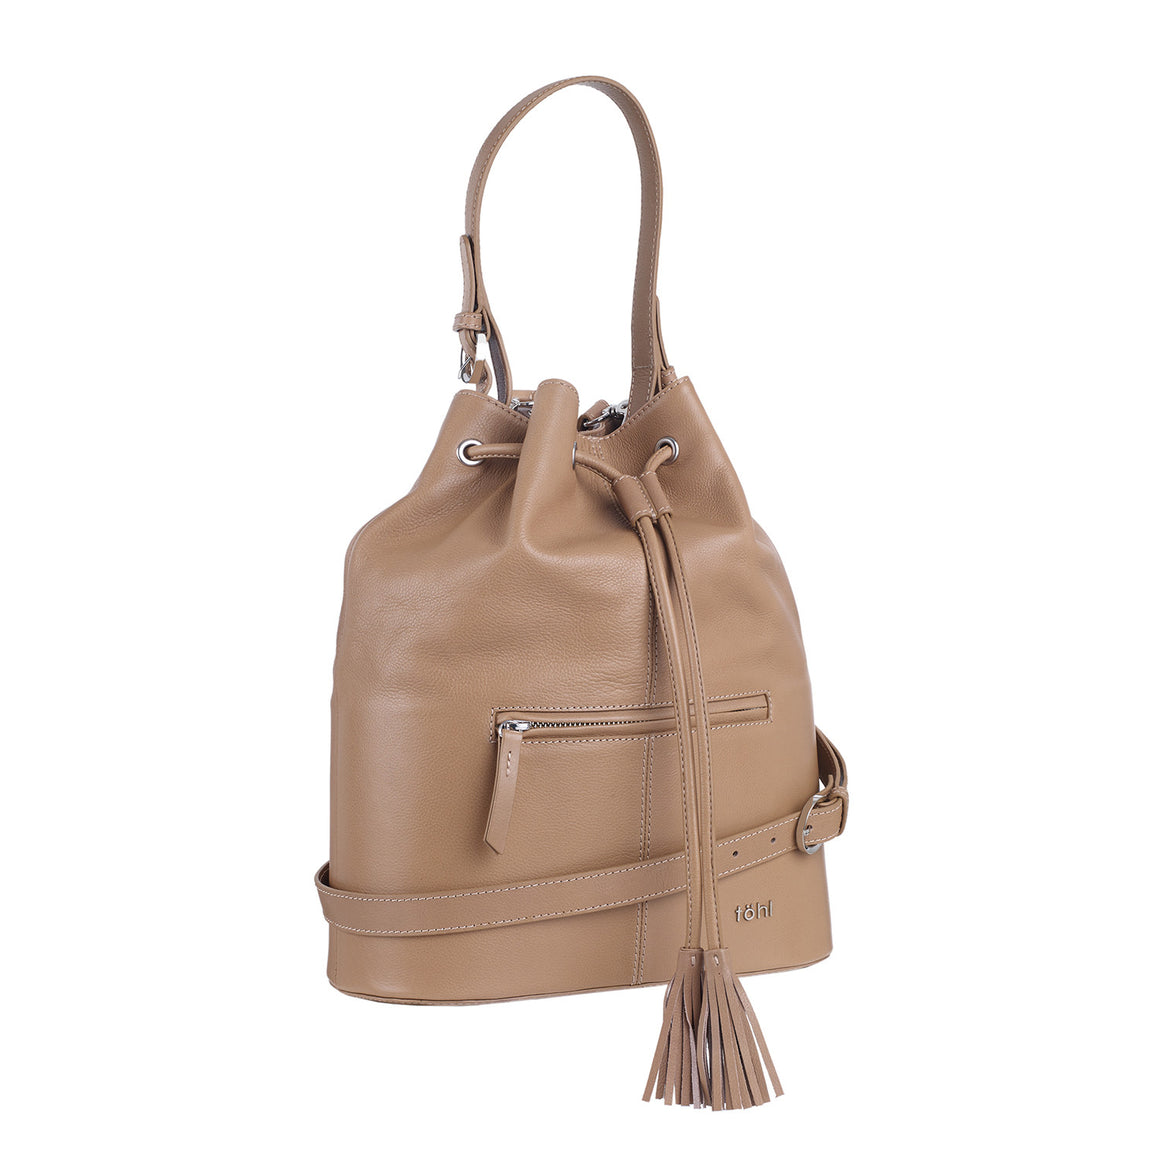 SB 0015 - TOHL NUSA WOMEN'S SHOULDER BAG - NUDE